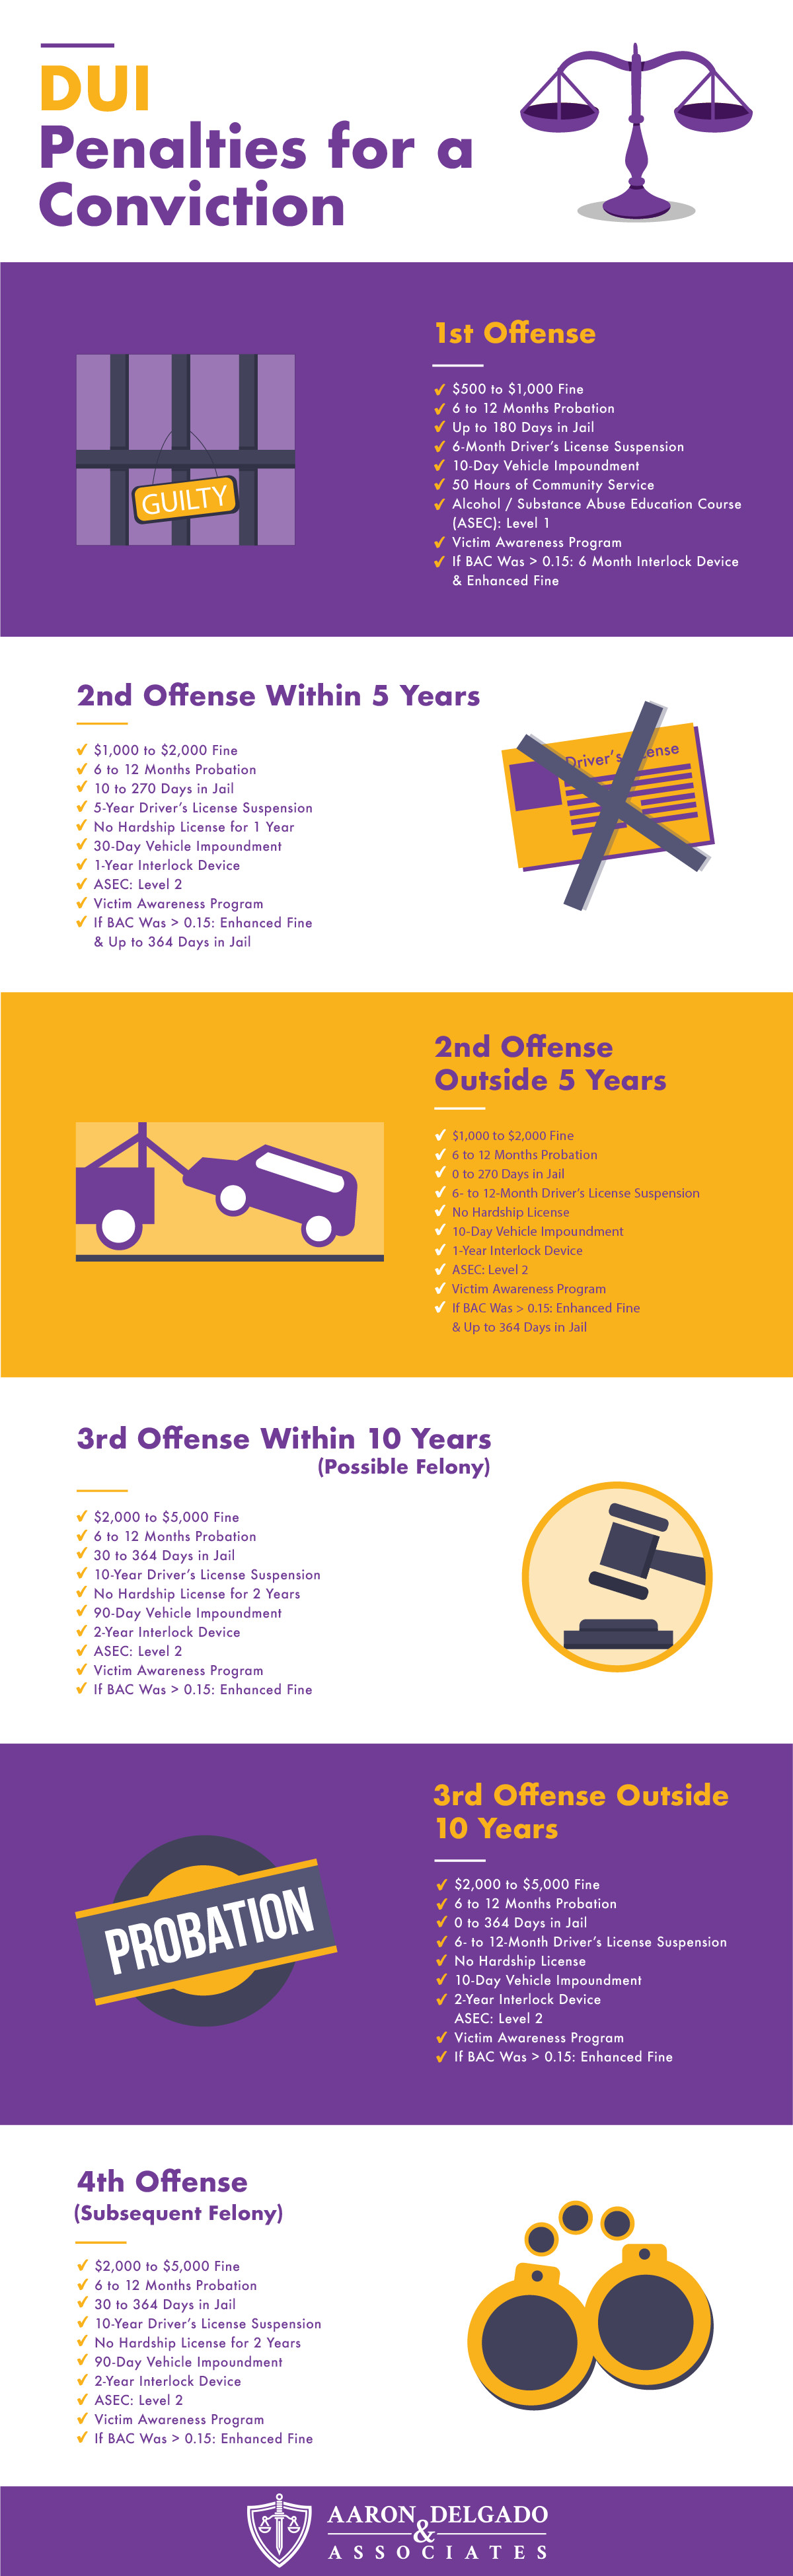 DUI penalties infographic